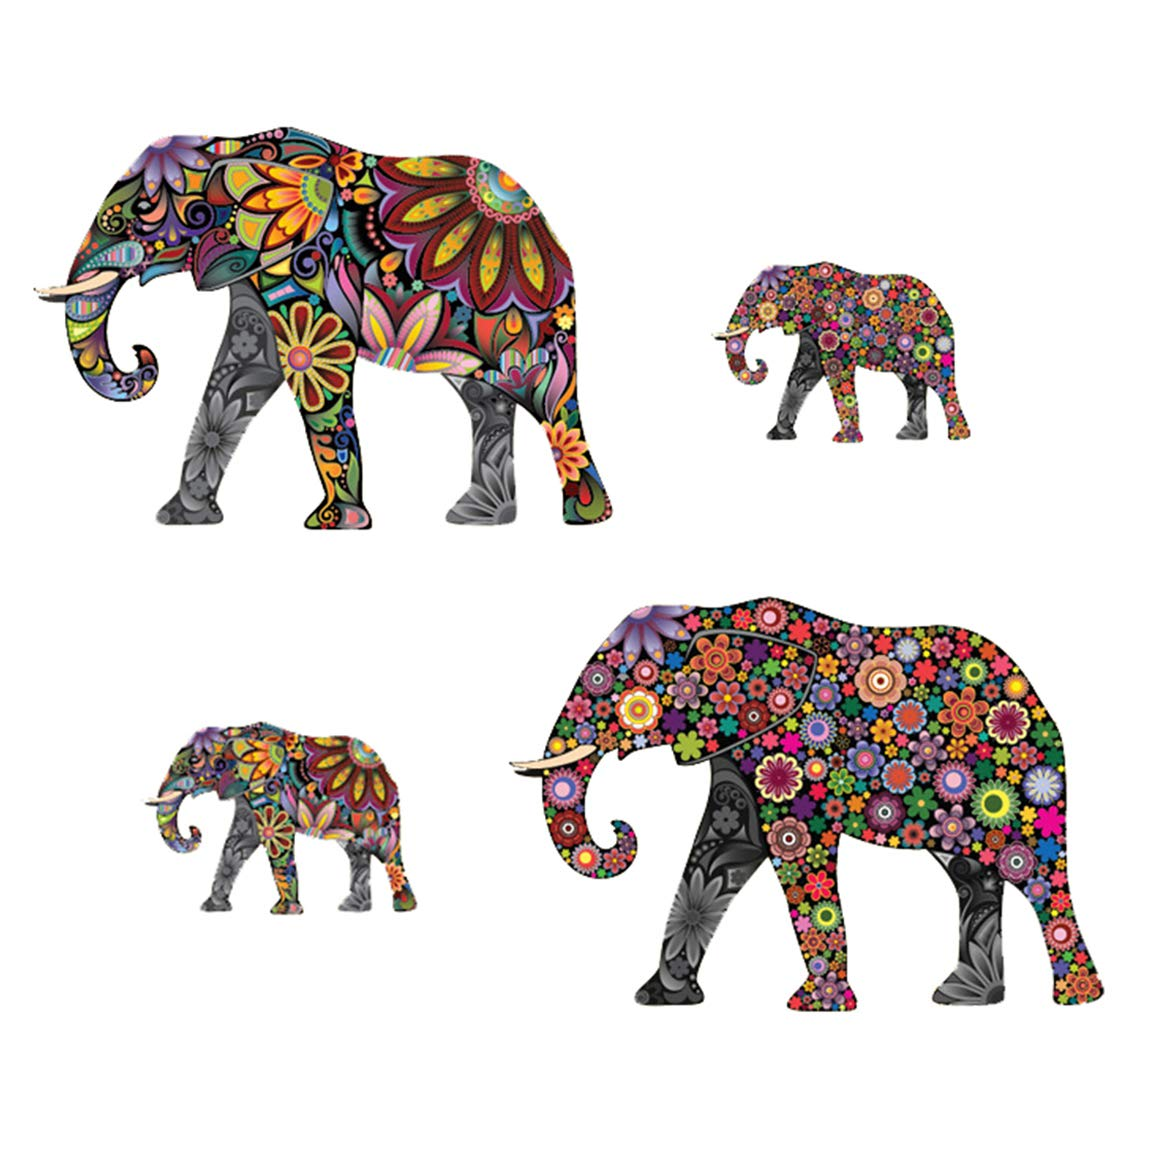 Peel and Stick Wall Decals Removable Wall Art Stickers for Home Office Nursery Decor(Colorful Elephant)